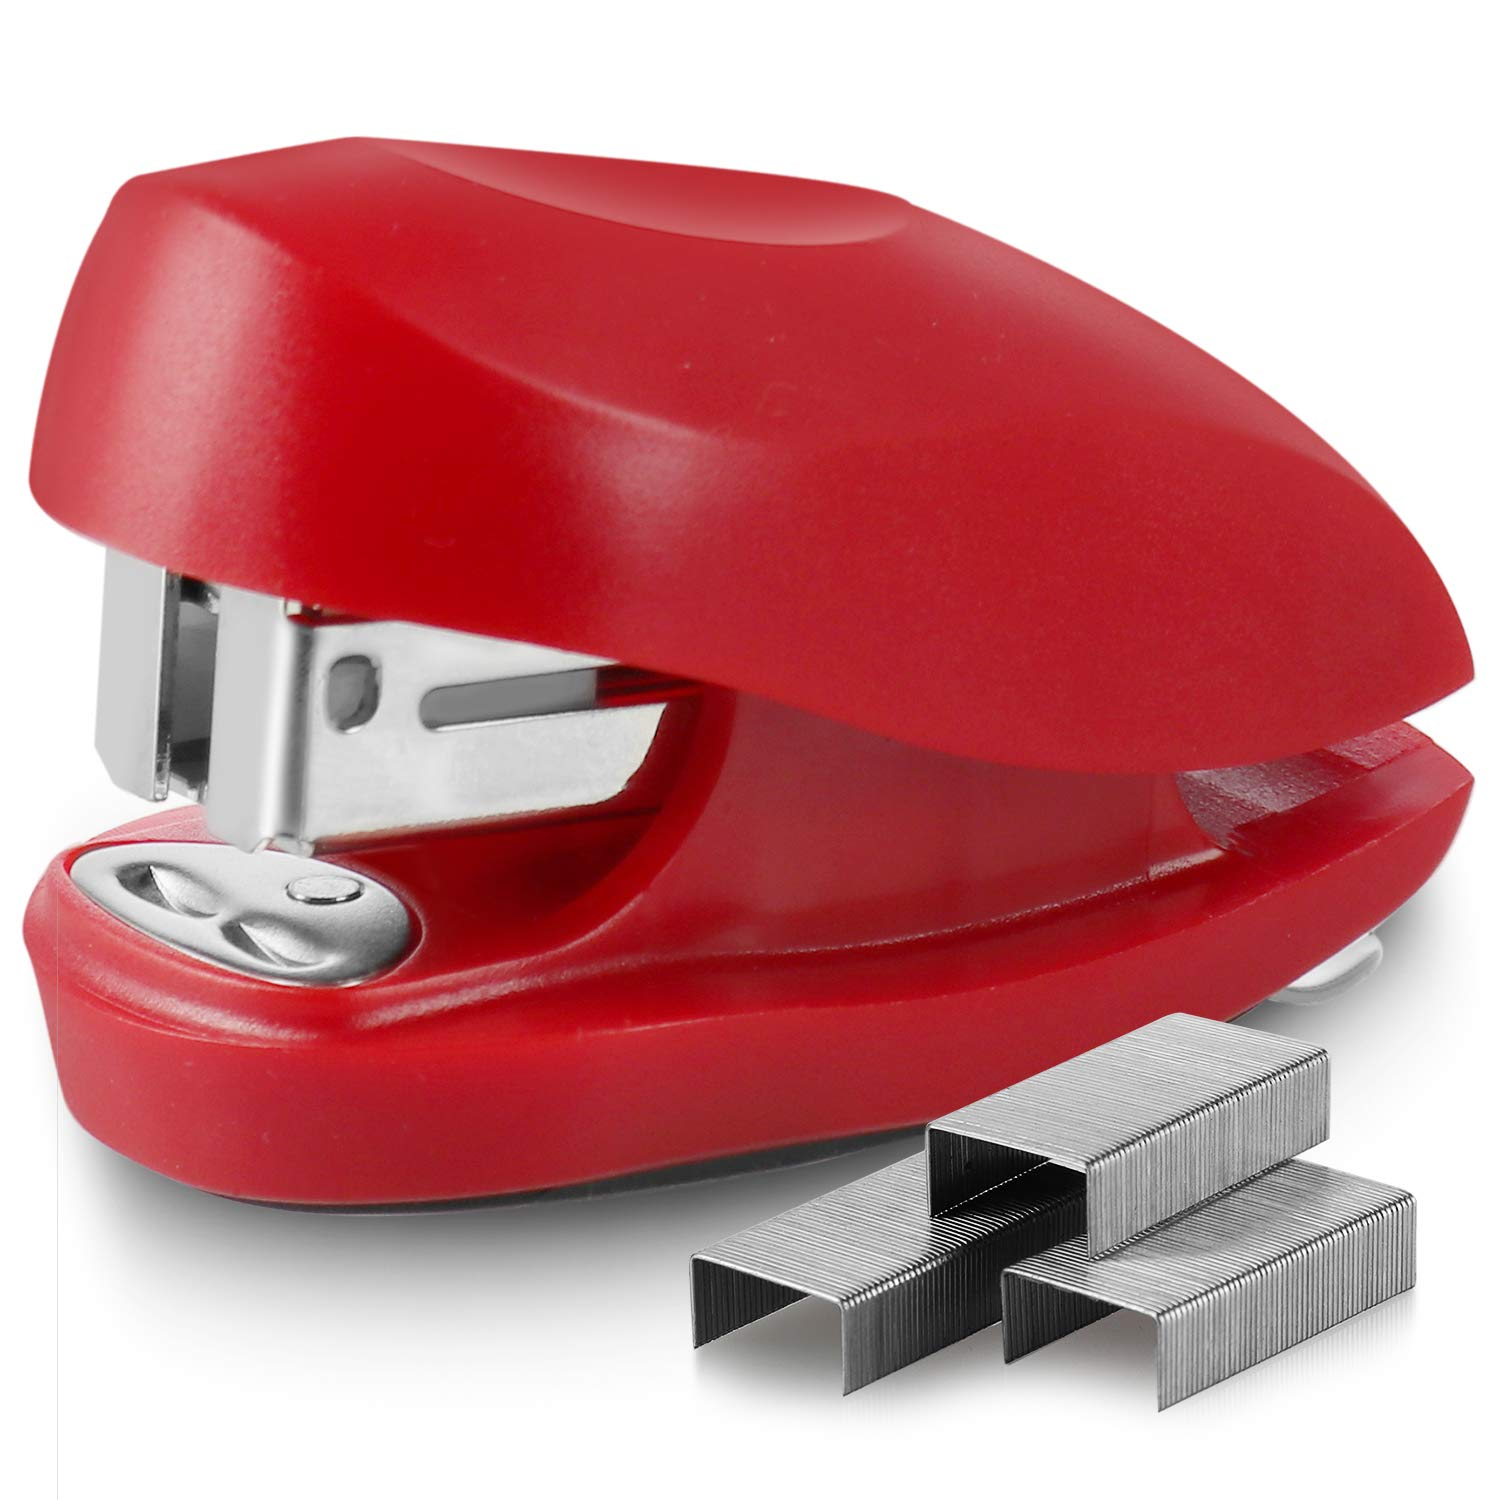 Swingline Red Mini Stapler With Staples, Tot, 12 Sheet Capacity, Small Stapler With Built In Staple Remover & 1000 Standard Staples, Staple Storage, Cute Compact Travel Size Stapler For Adults & Kids.